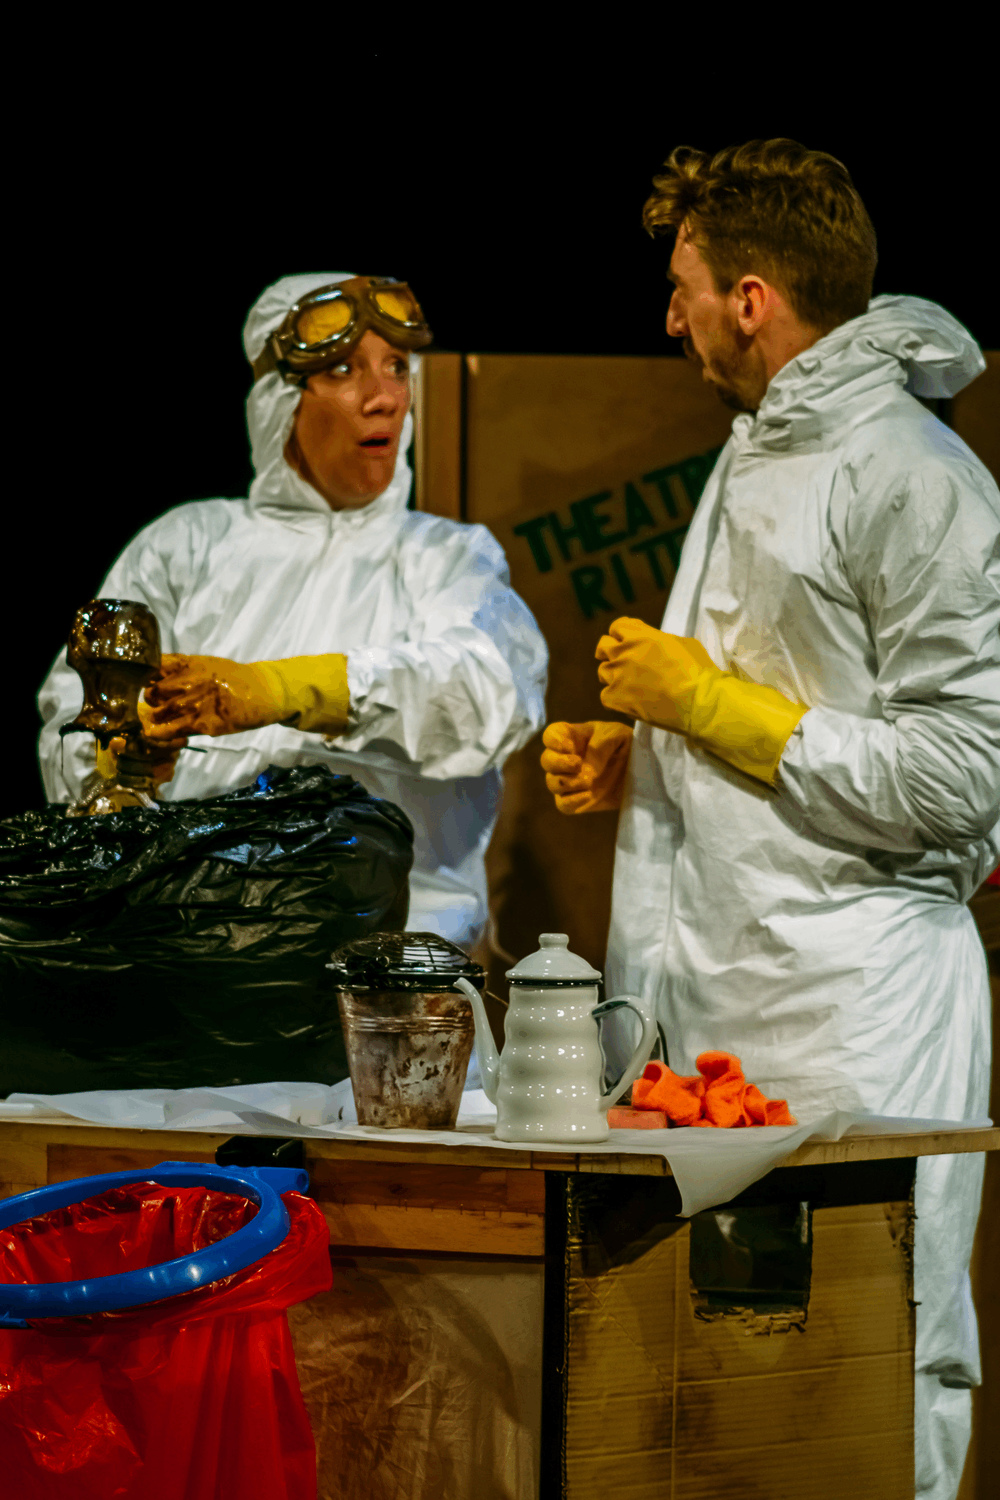 two puppeteers in chemical cleaning suits, wearing rubber gloves lift a duck puppet out of a bin bag